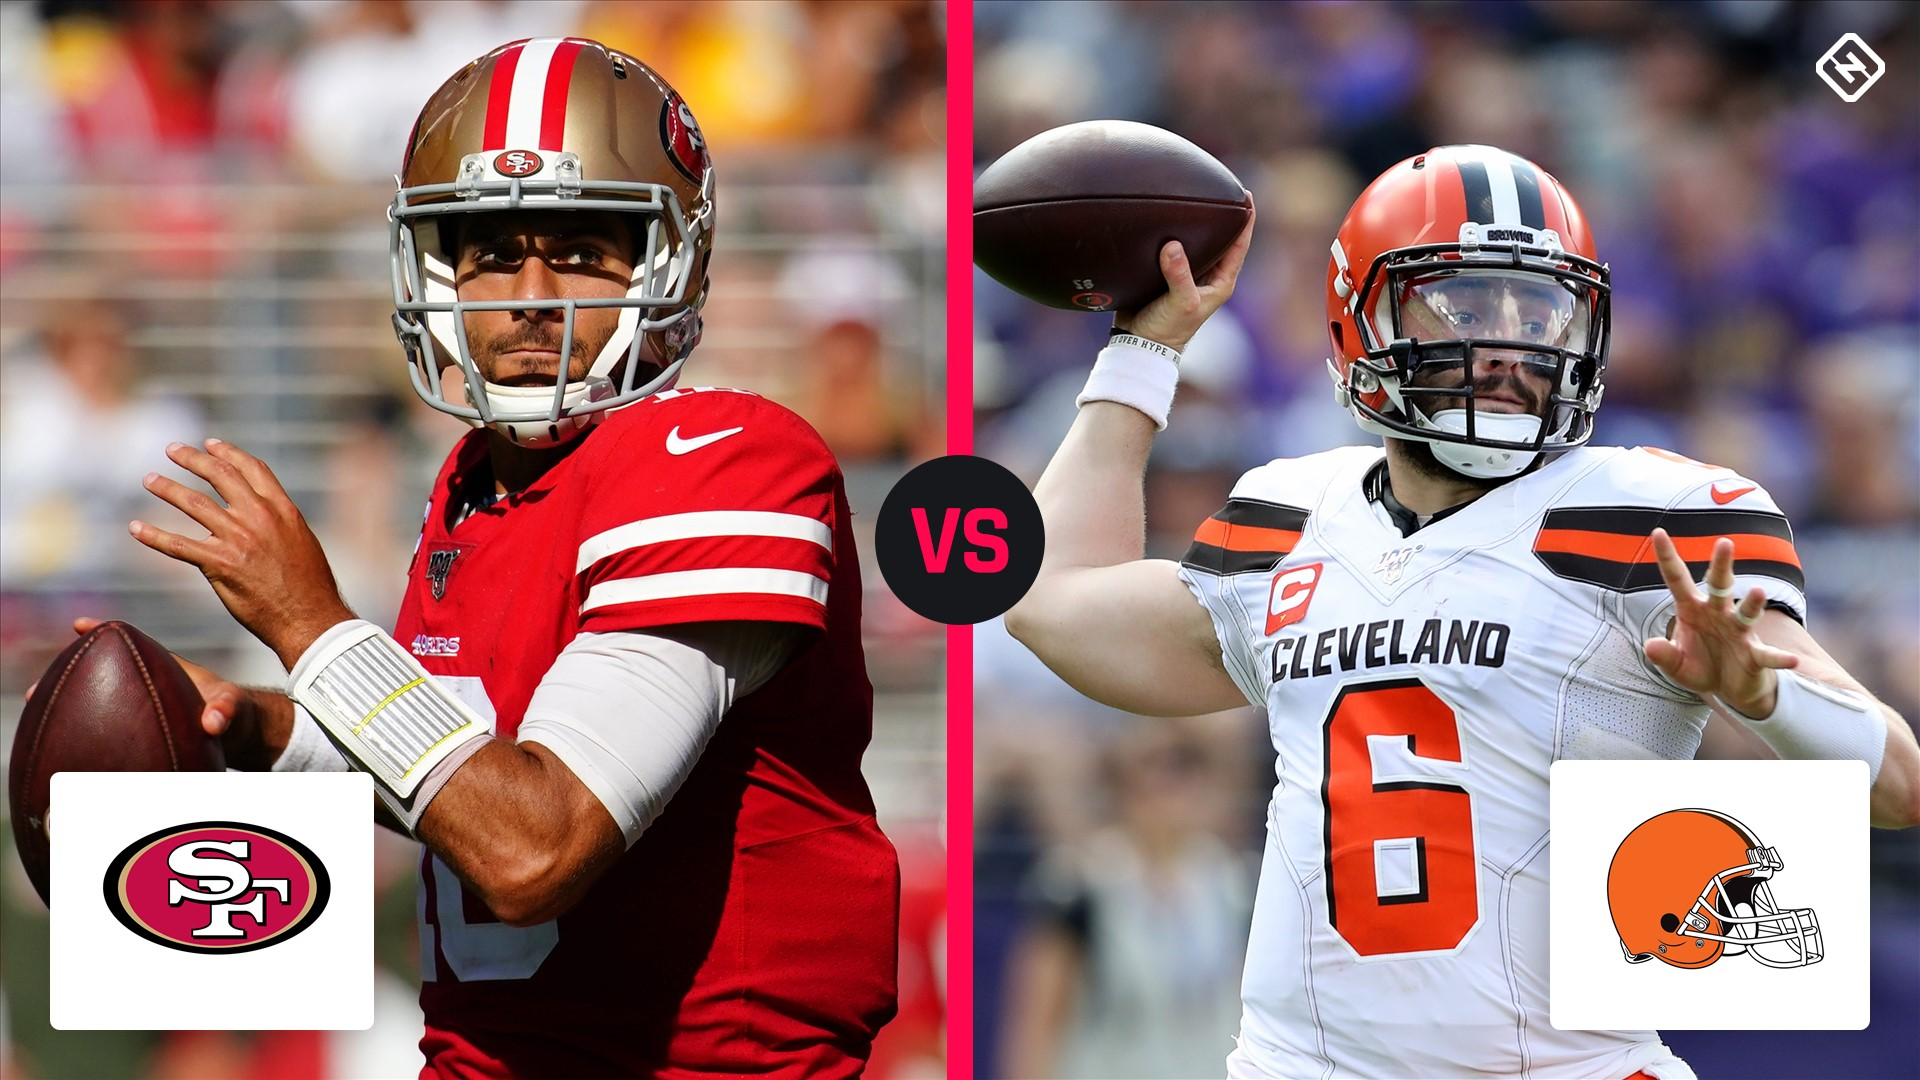 49ers-browns-channel-10092019-getty-ftr_ip8t2u95ohmc1xfb0ikxloc8a.jpeg